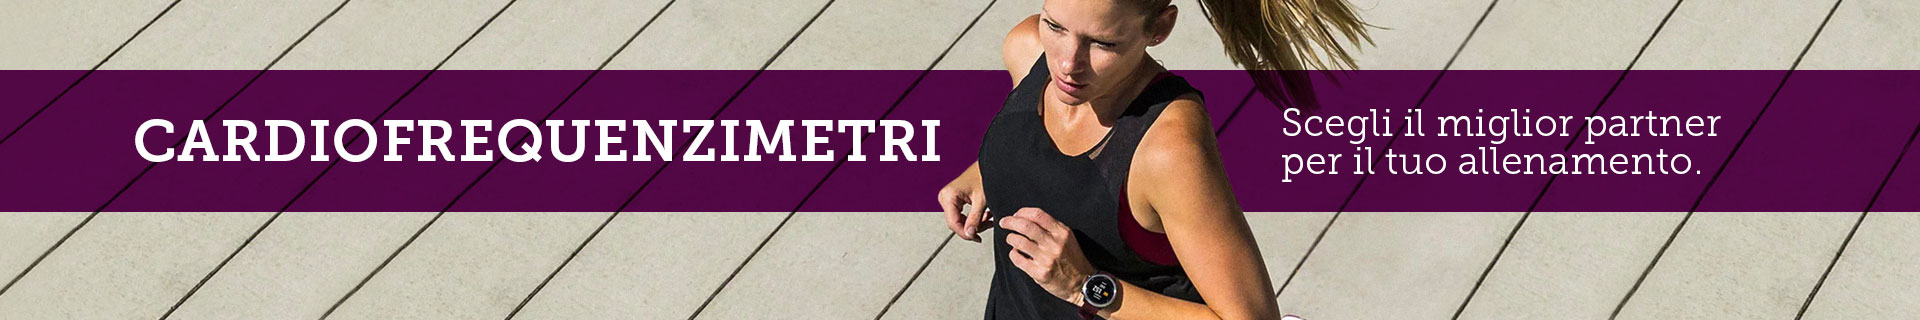 Heart rate monitor: sport and lifestyle